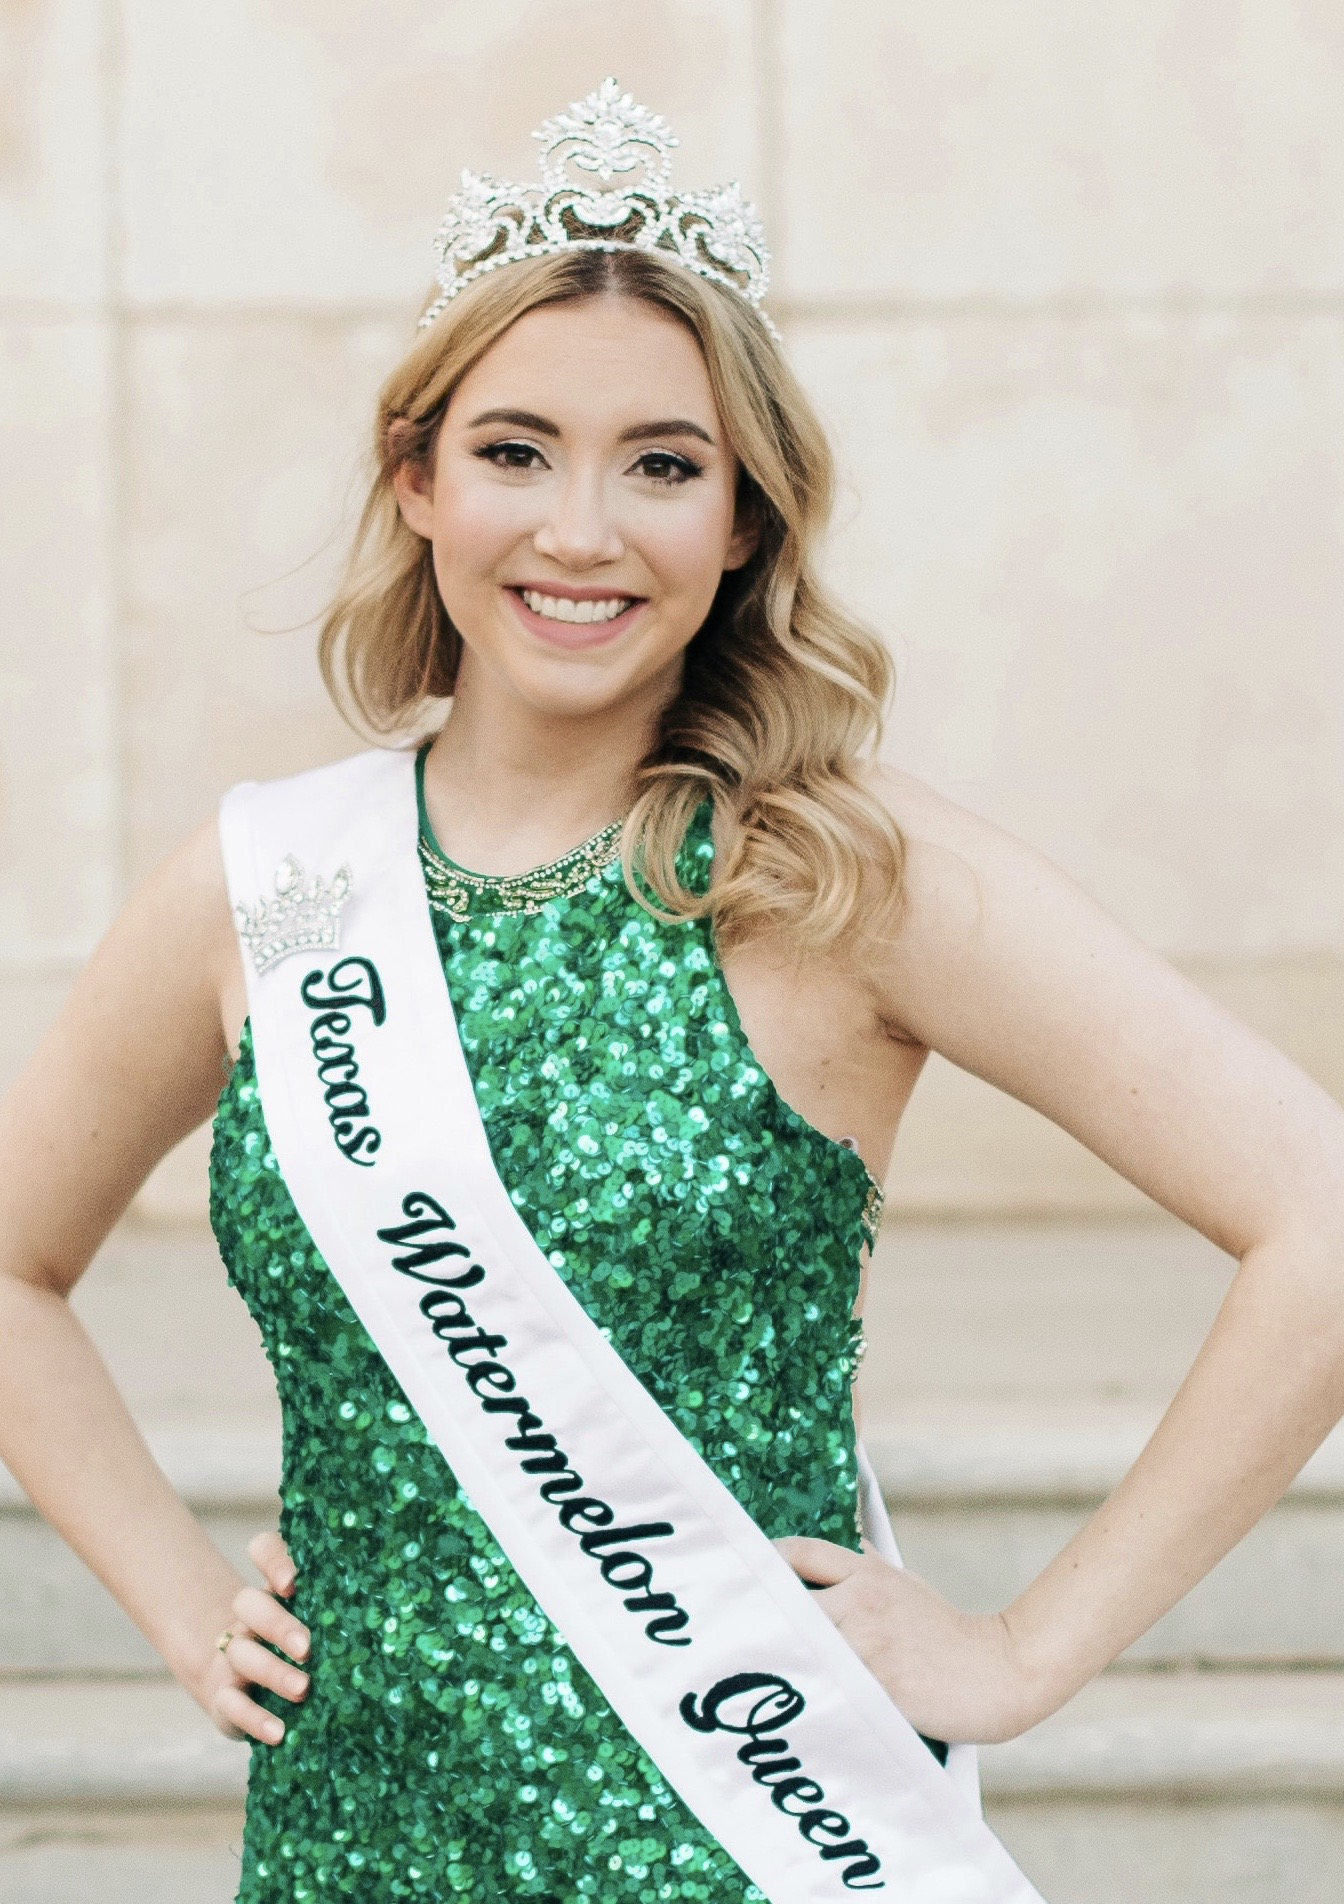 2020 Texas Watermelon Queen, Landen Addison